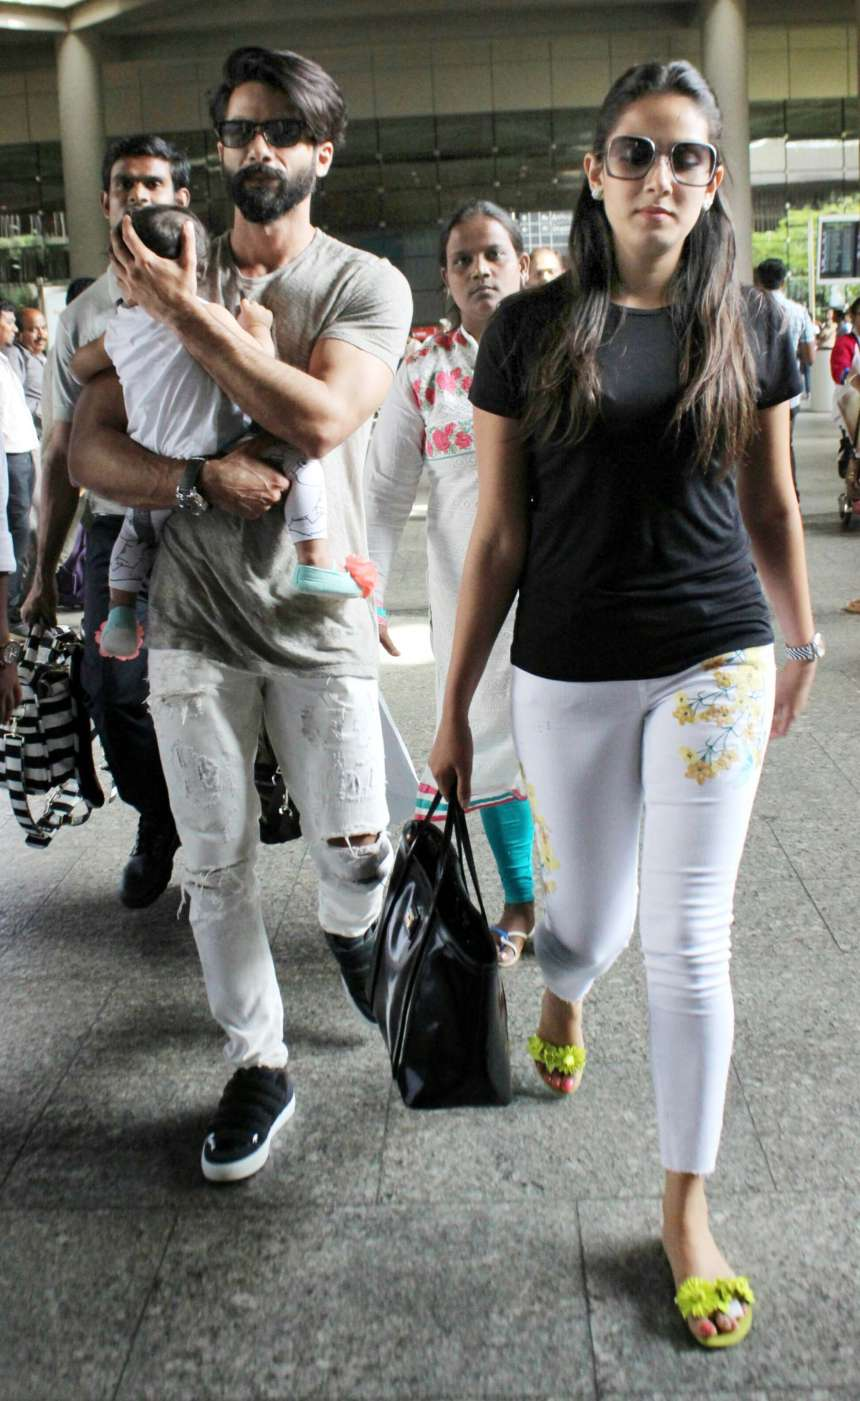 Shahid Kapoor and Mira Rajput made stylish appearances along with their adorable little angel Misha.